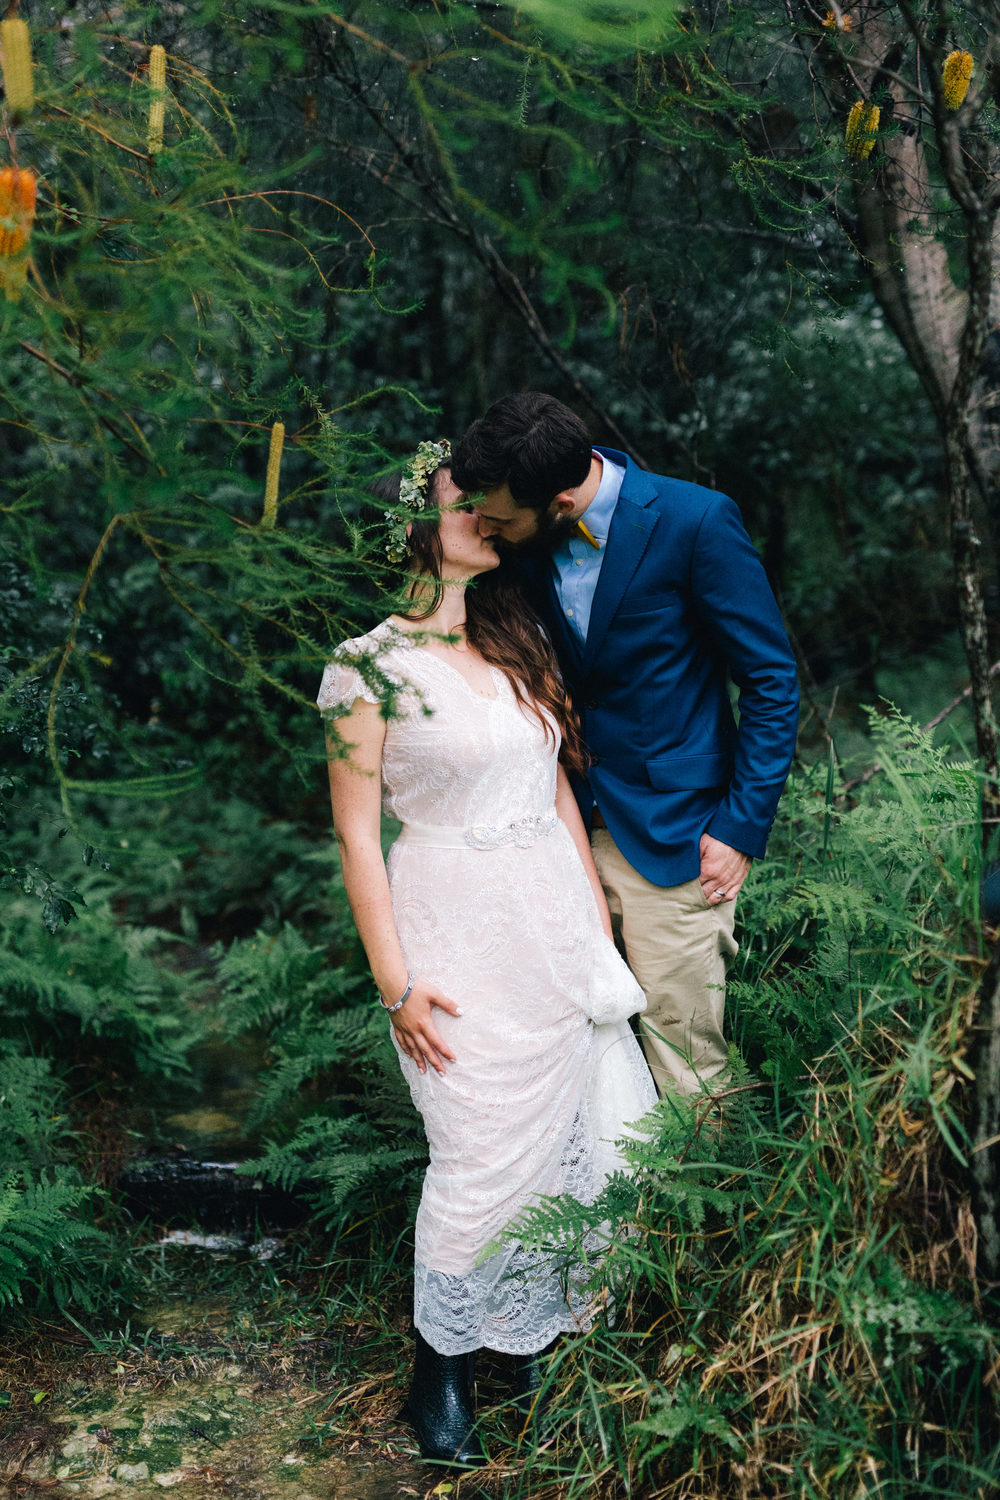 Rachel_Takes_Pictures_Wedding_Photography_Sydney_30.jpg